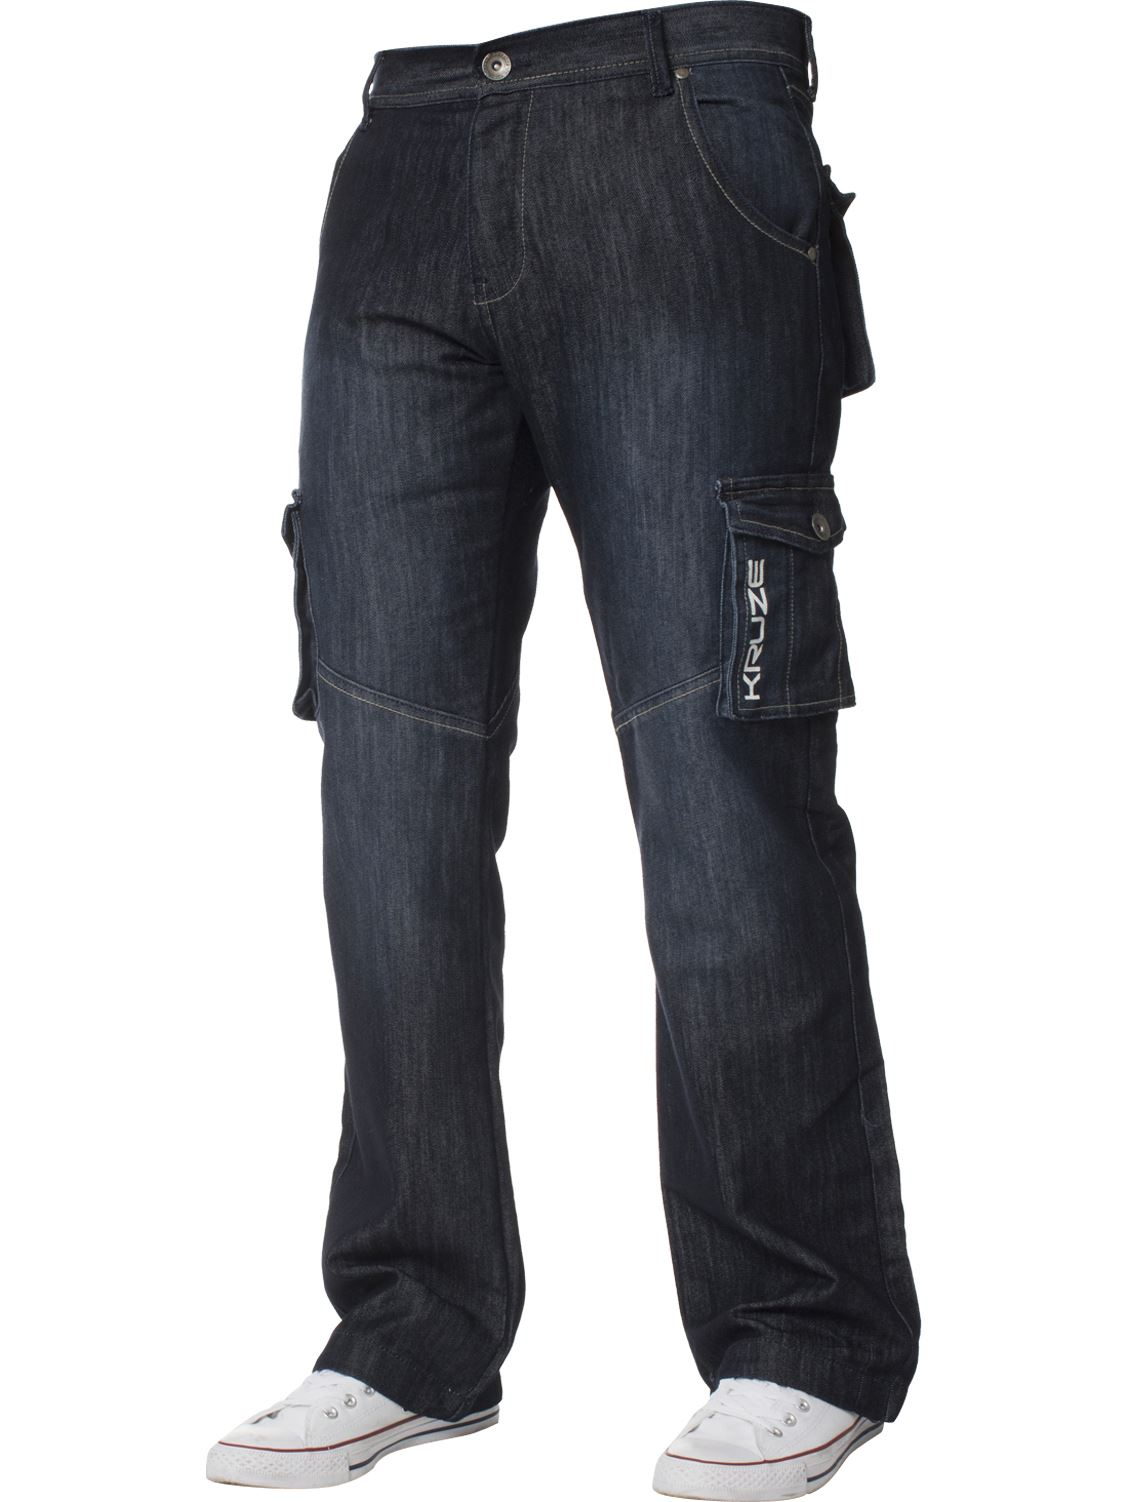 KRUZE-Mens-Combat-Jeans-Casual-Cargo-Work-Pants-Denim-Trousers-All-Waist-Sizes thumbnail 22